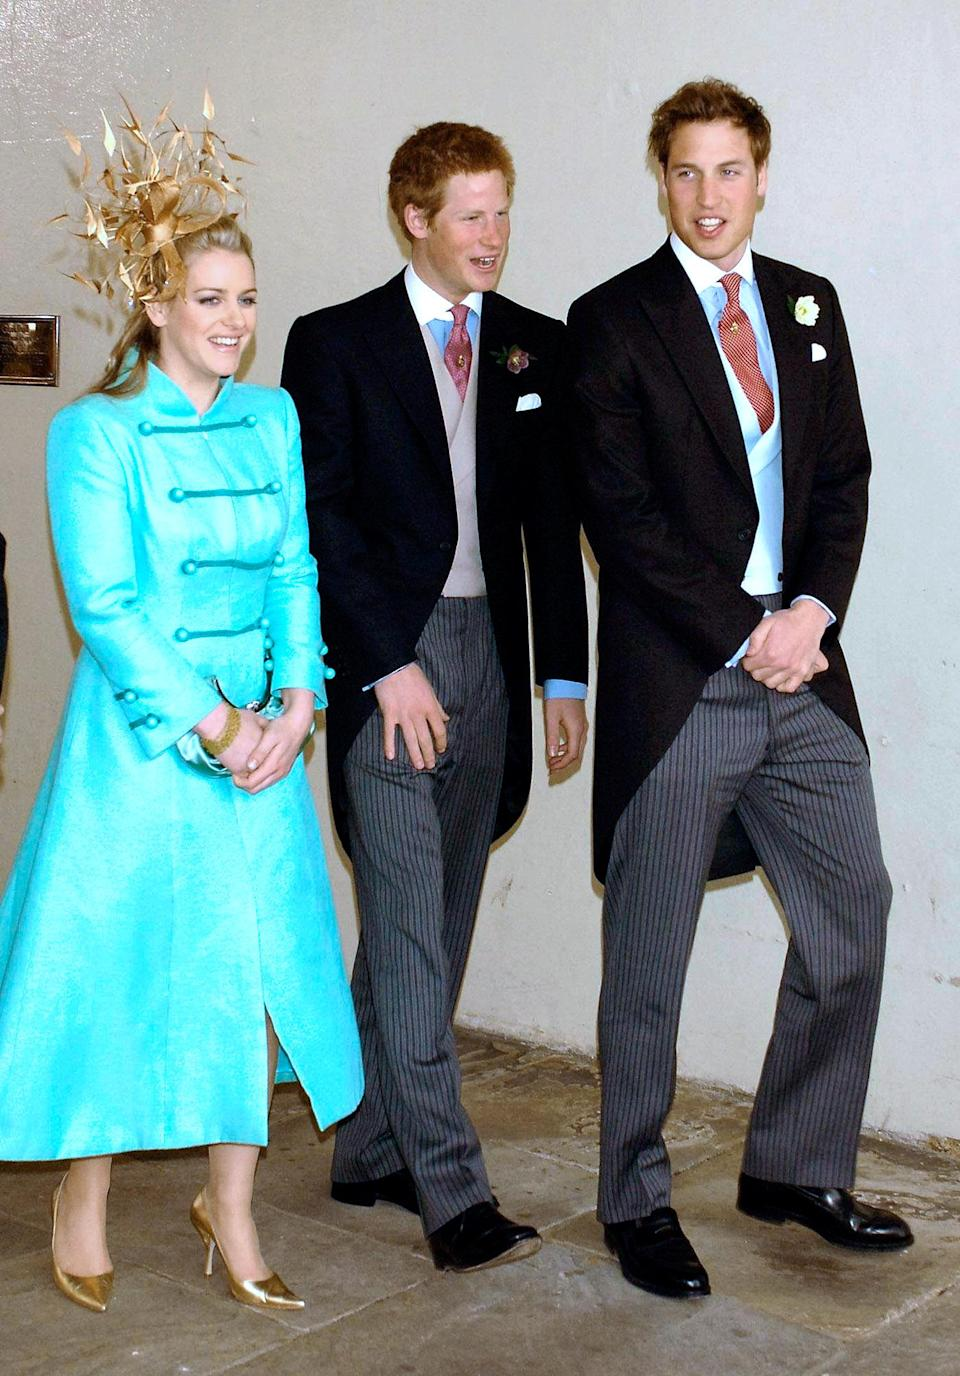 Prince William reportedly had regular bust-ups with his step-sister, Laura Lopes, around the same time Camilla and Charles married in 2005. Photo: Getty Images